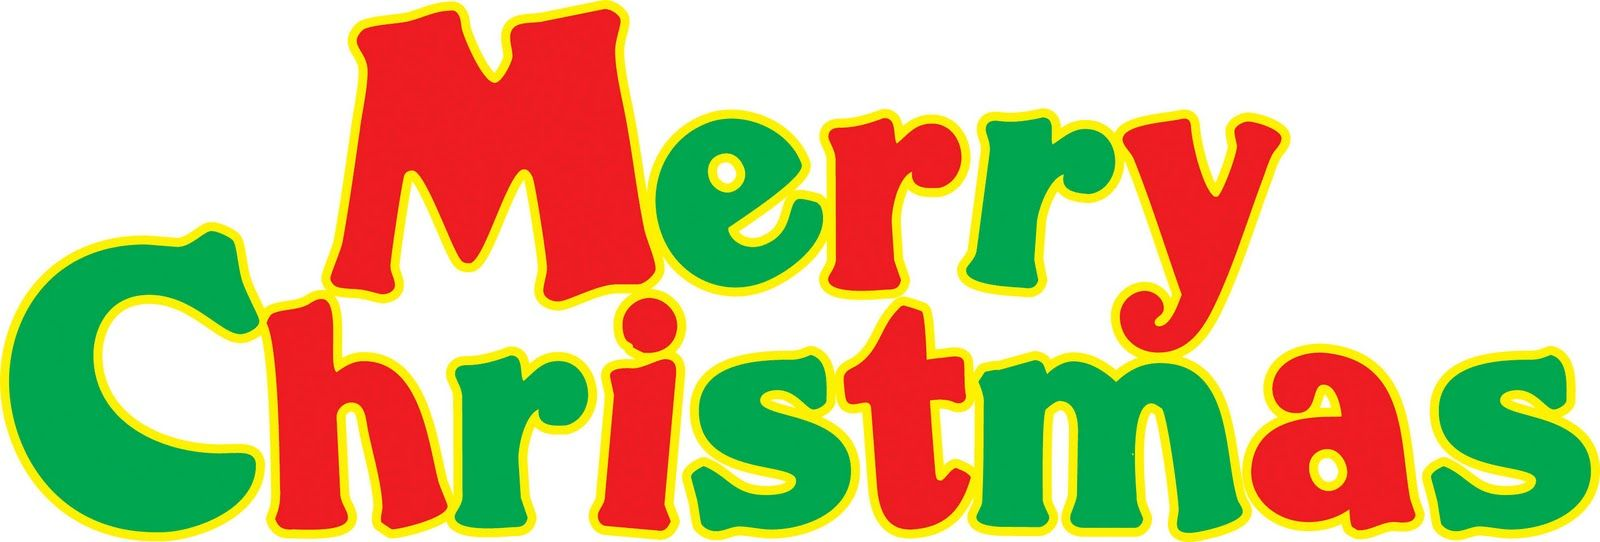 merry christmas clip art use these free images for your websites rh pinterest com christmas clipart banners christmas clipart banners